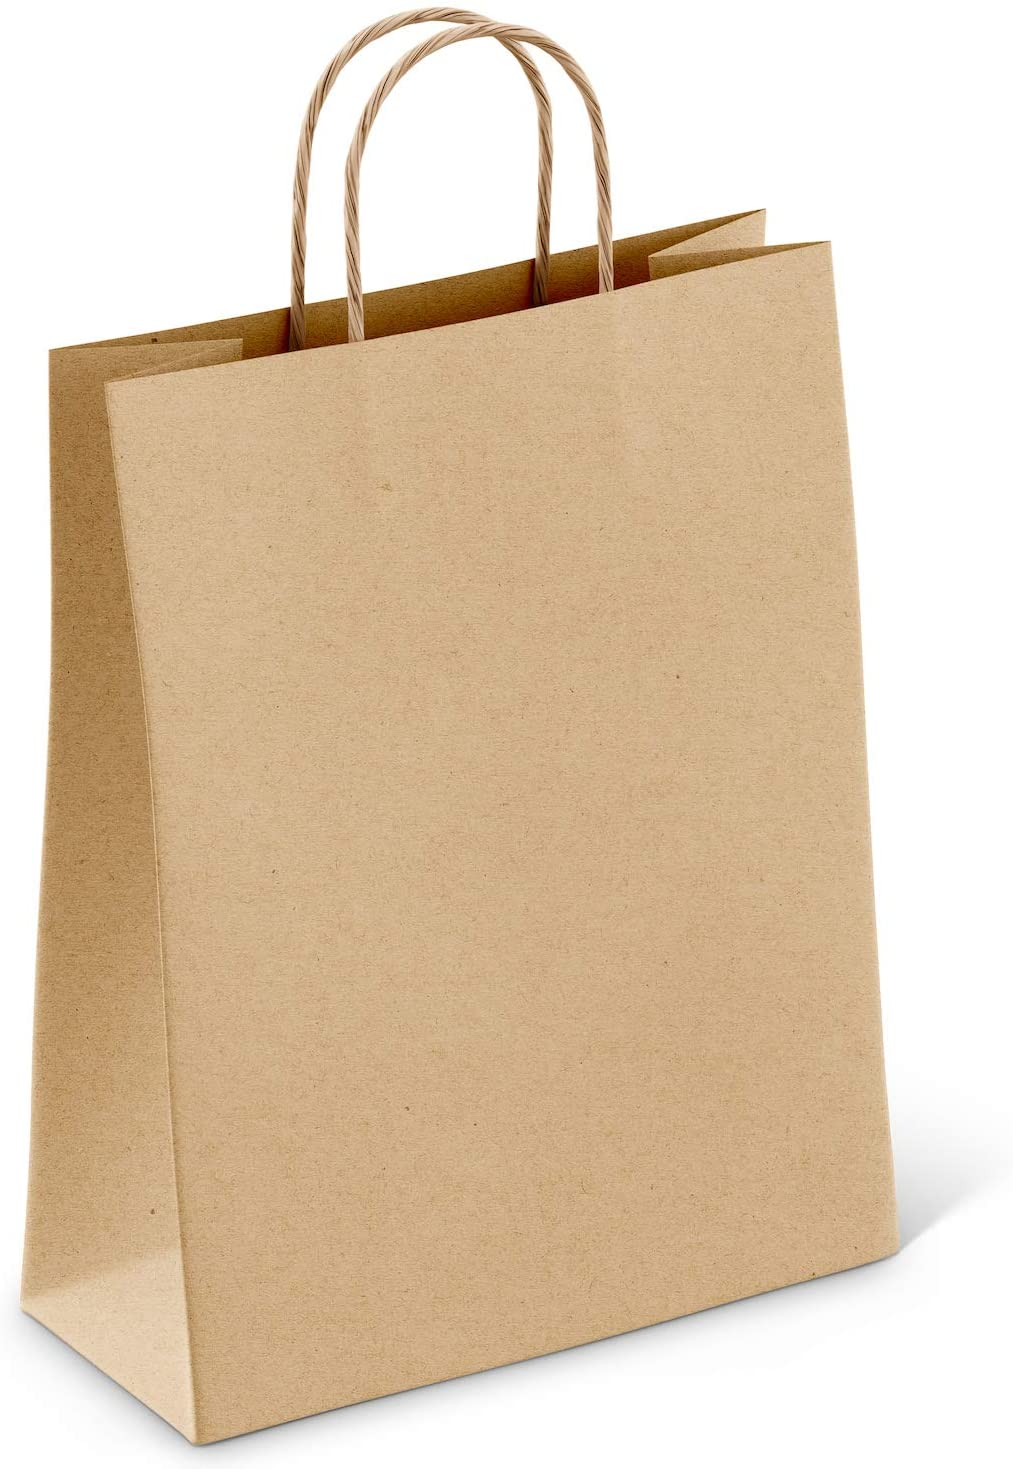 (100 pcs) Kraft Brown Paper Bags w/Handles Reusable Grocery Bags Great Gift Bag Recyclable Shopping Bags Medium Size 10.0